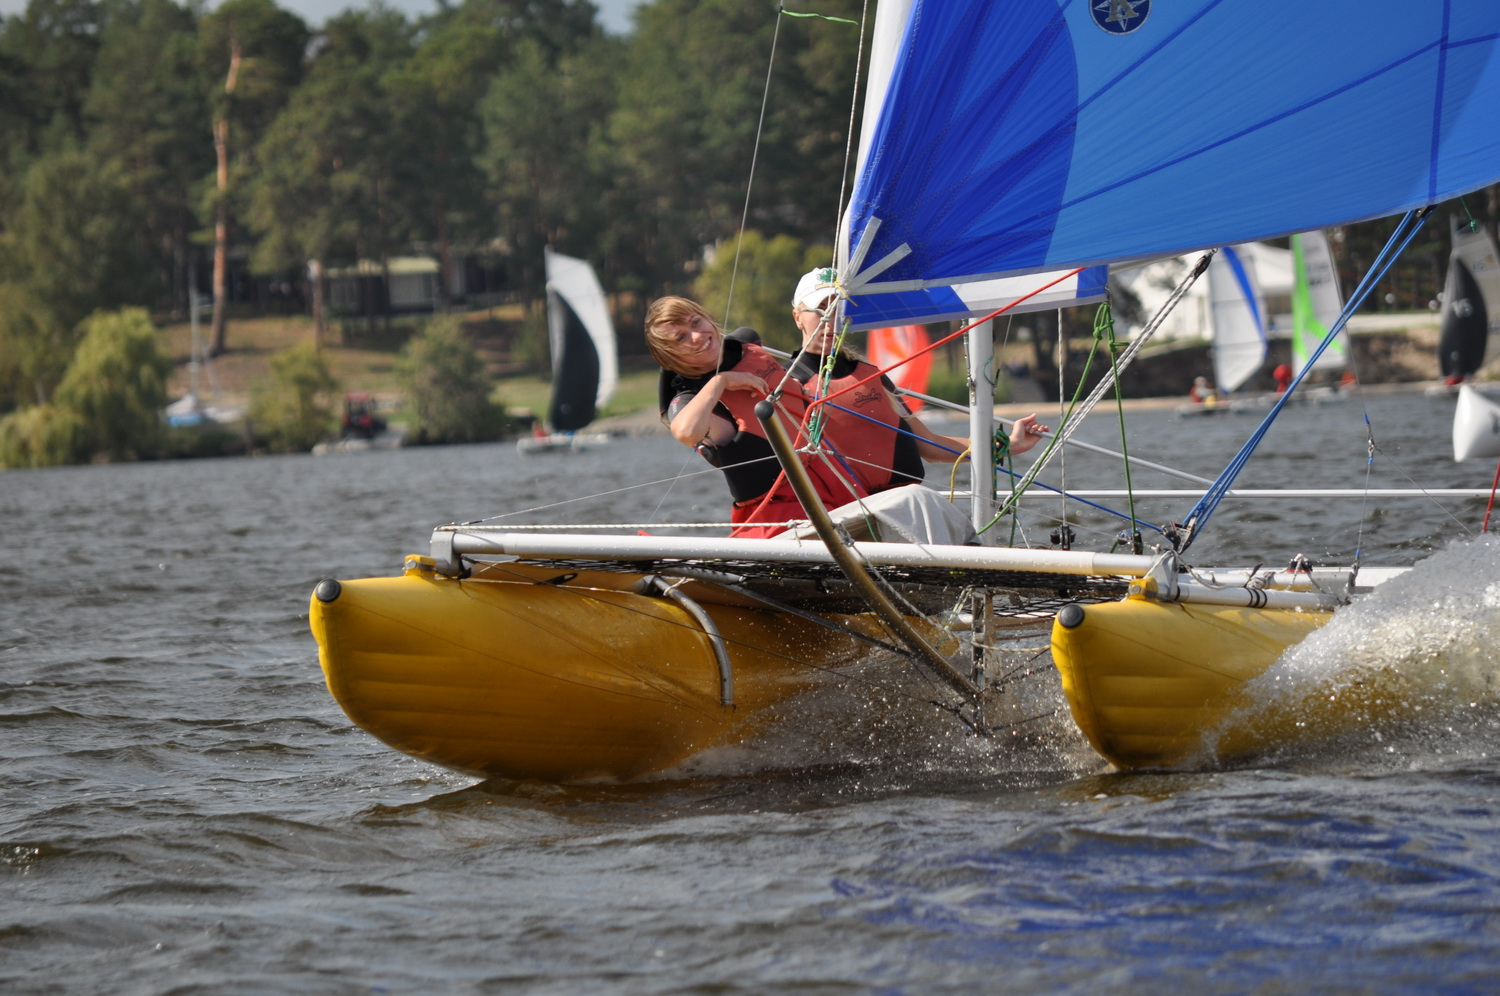 Inflatable sailing catamaran Ducky17